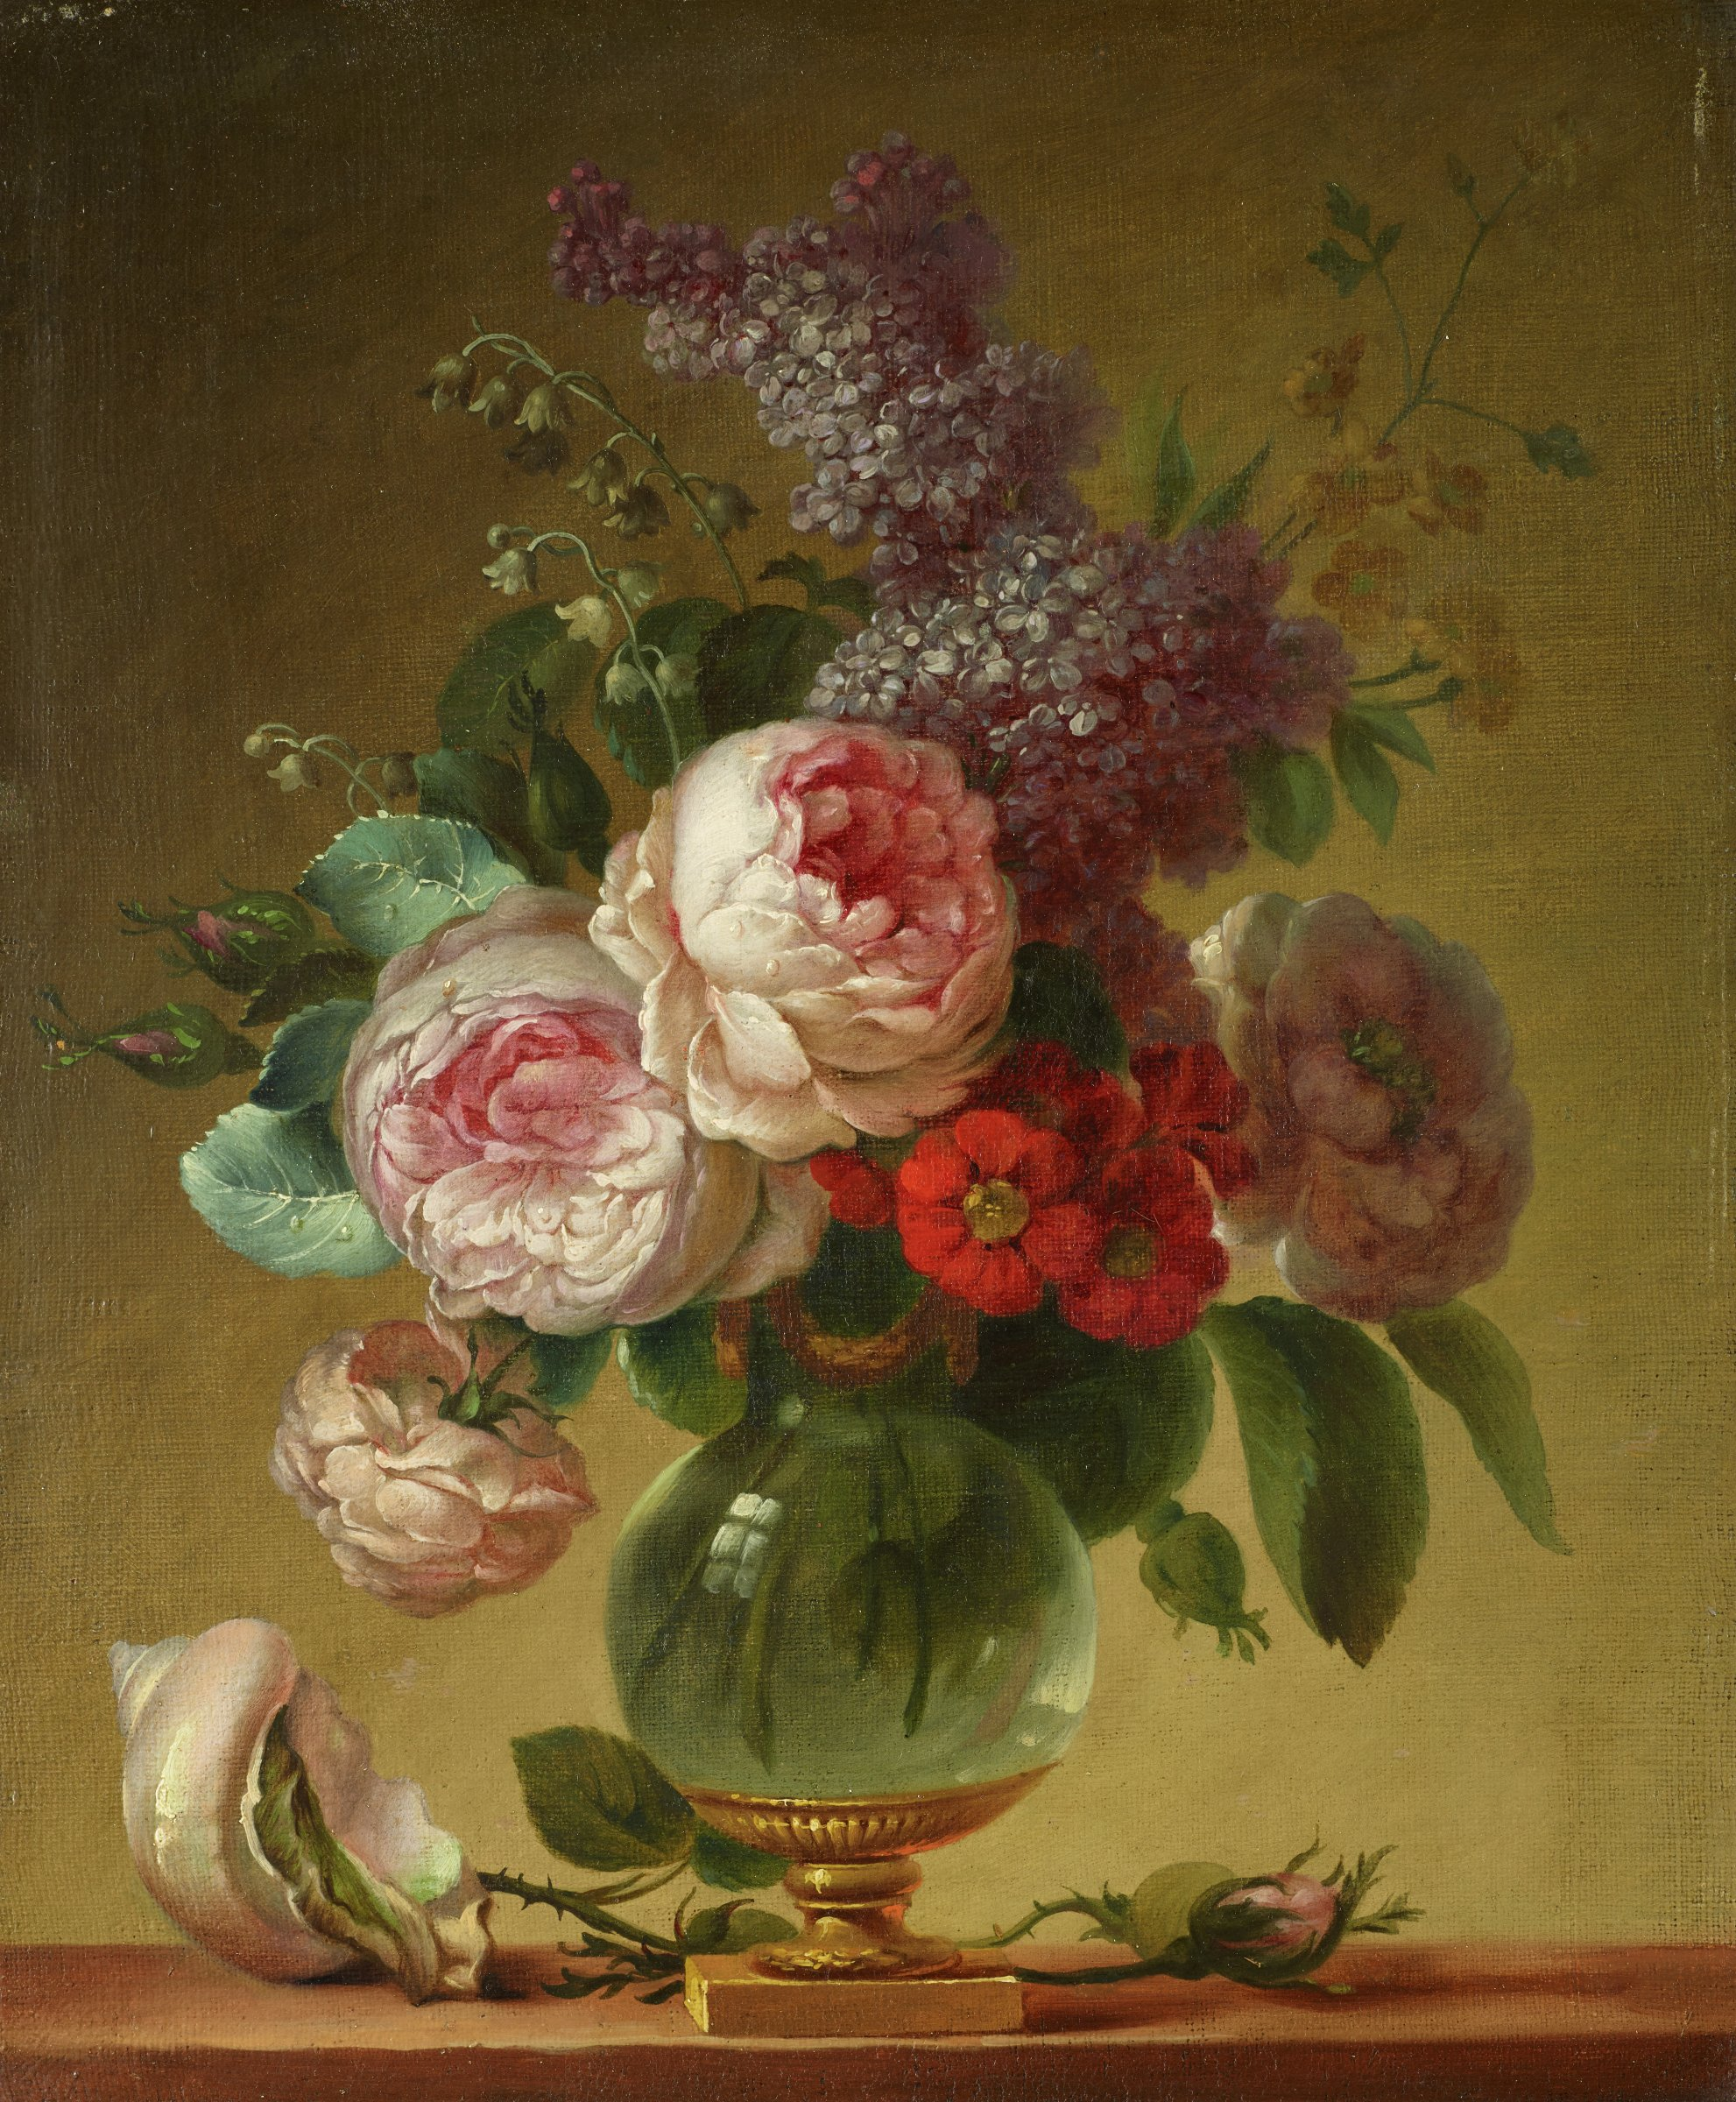 Still life with a bouquet of roses, carnations, hollyhocks, lilacs and other flowers in a glass vase with a pink conch shell on the parapet beside it, in contemporary carved and gilded wood frame.